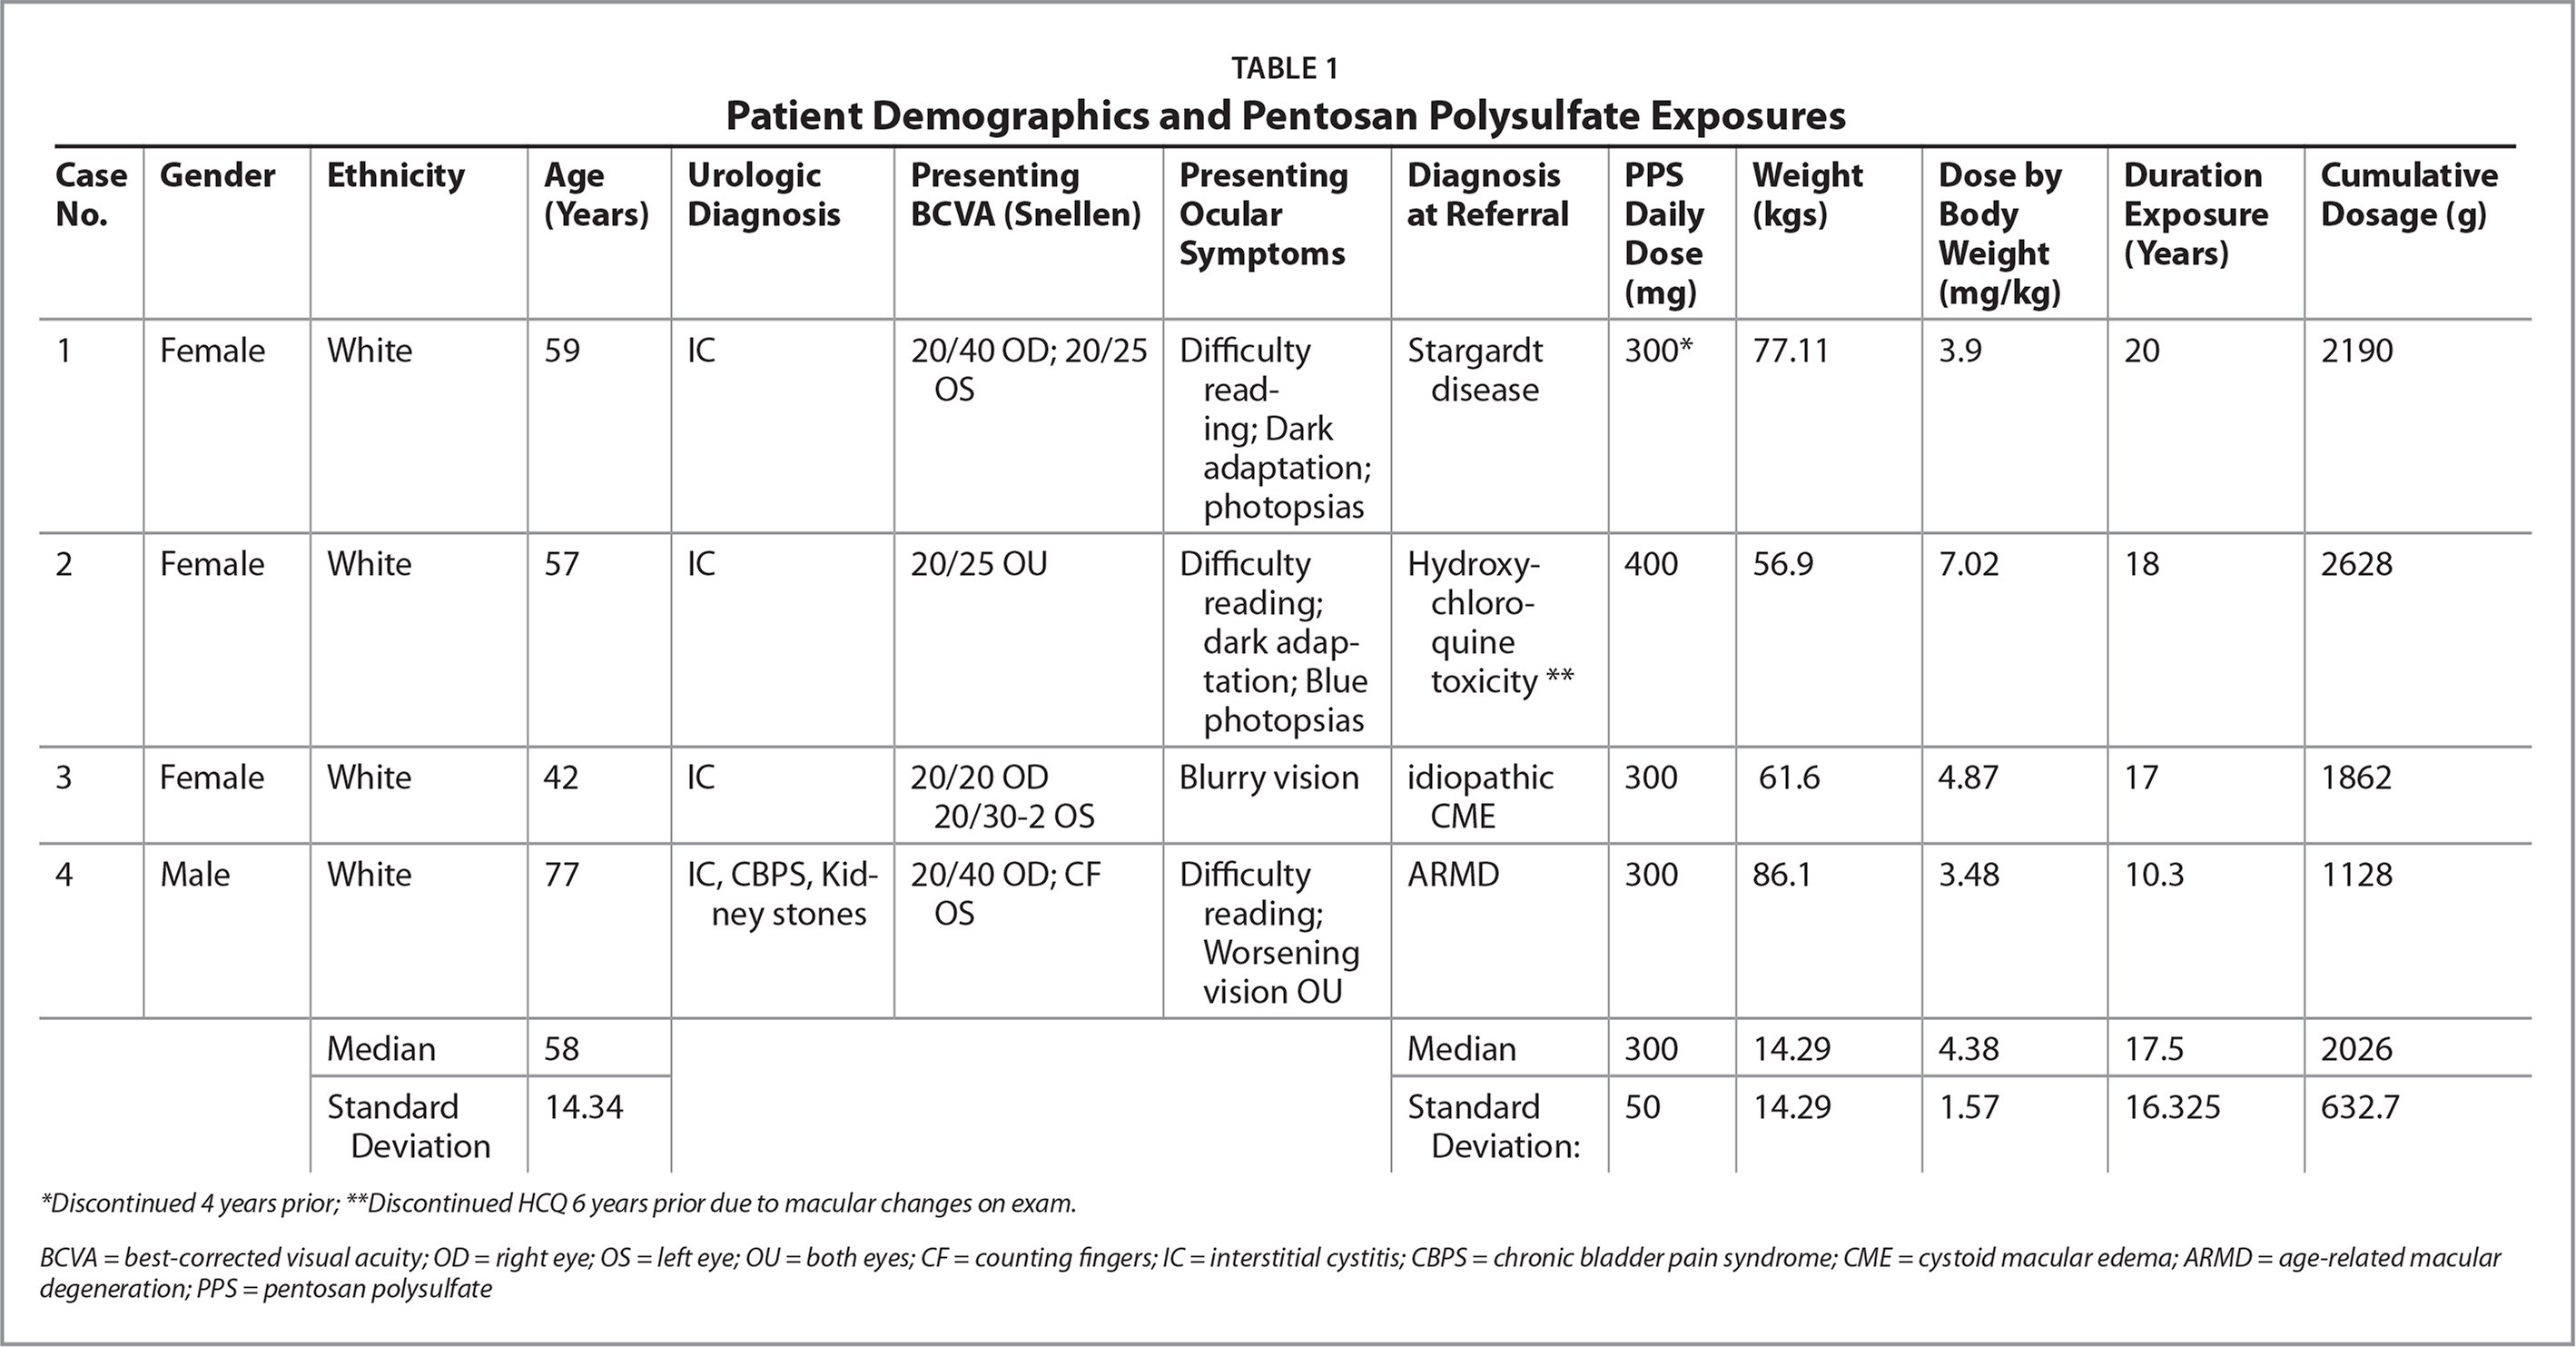 Patient Demographics and Pentosan Polysulfate Exposures